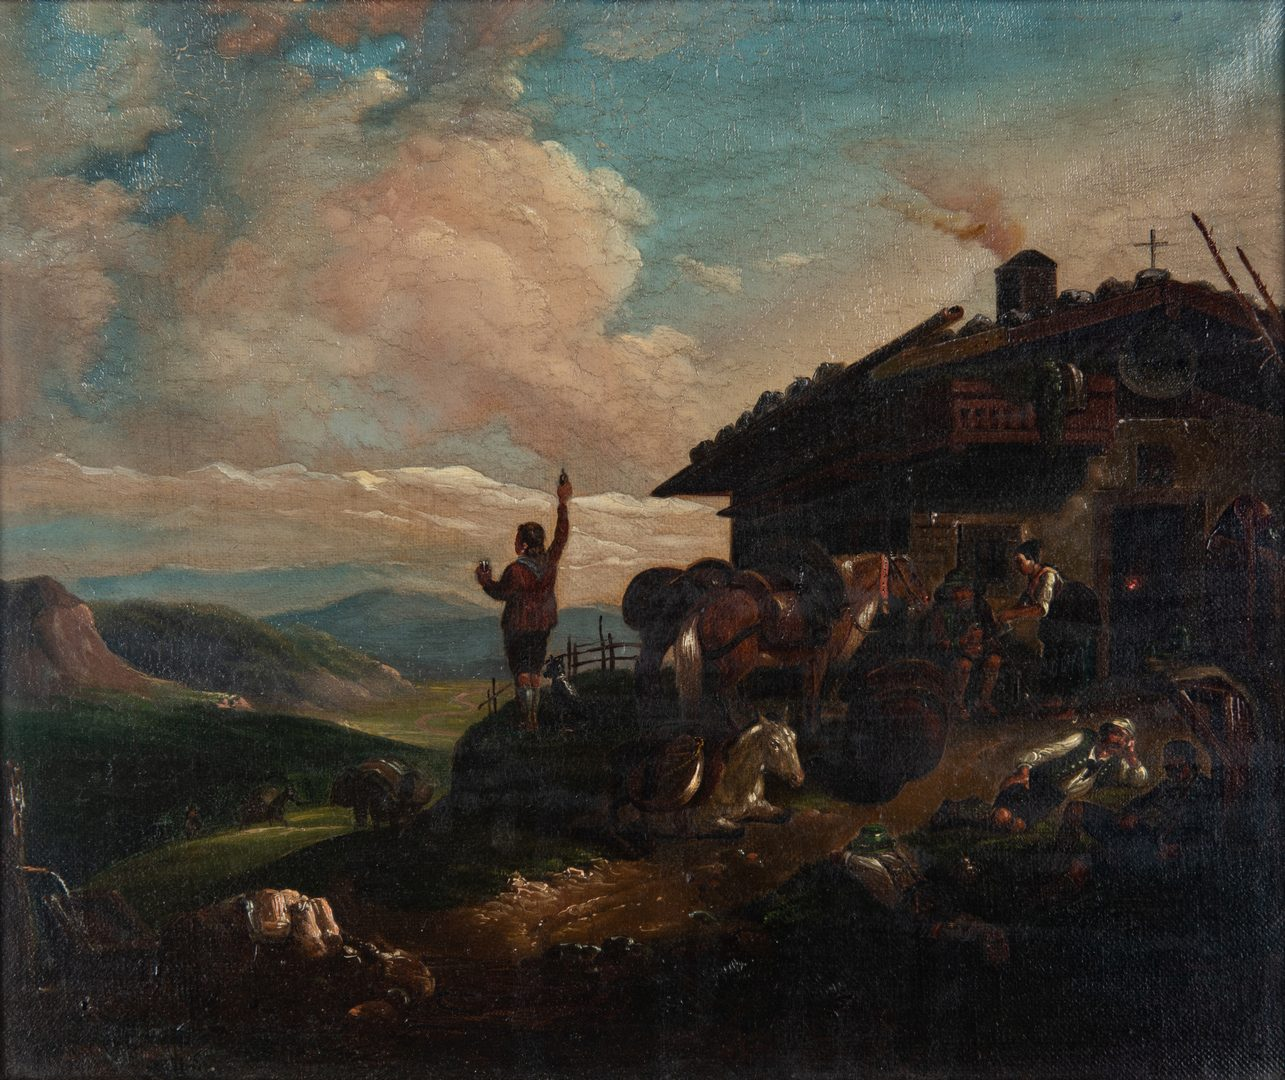 Lot 363: Tyrolian Continental Landscape with Travelers